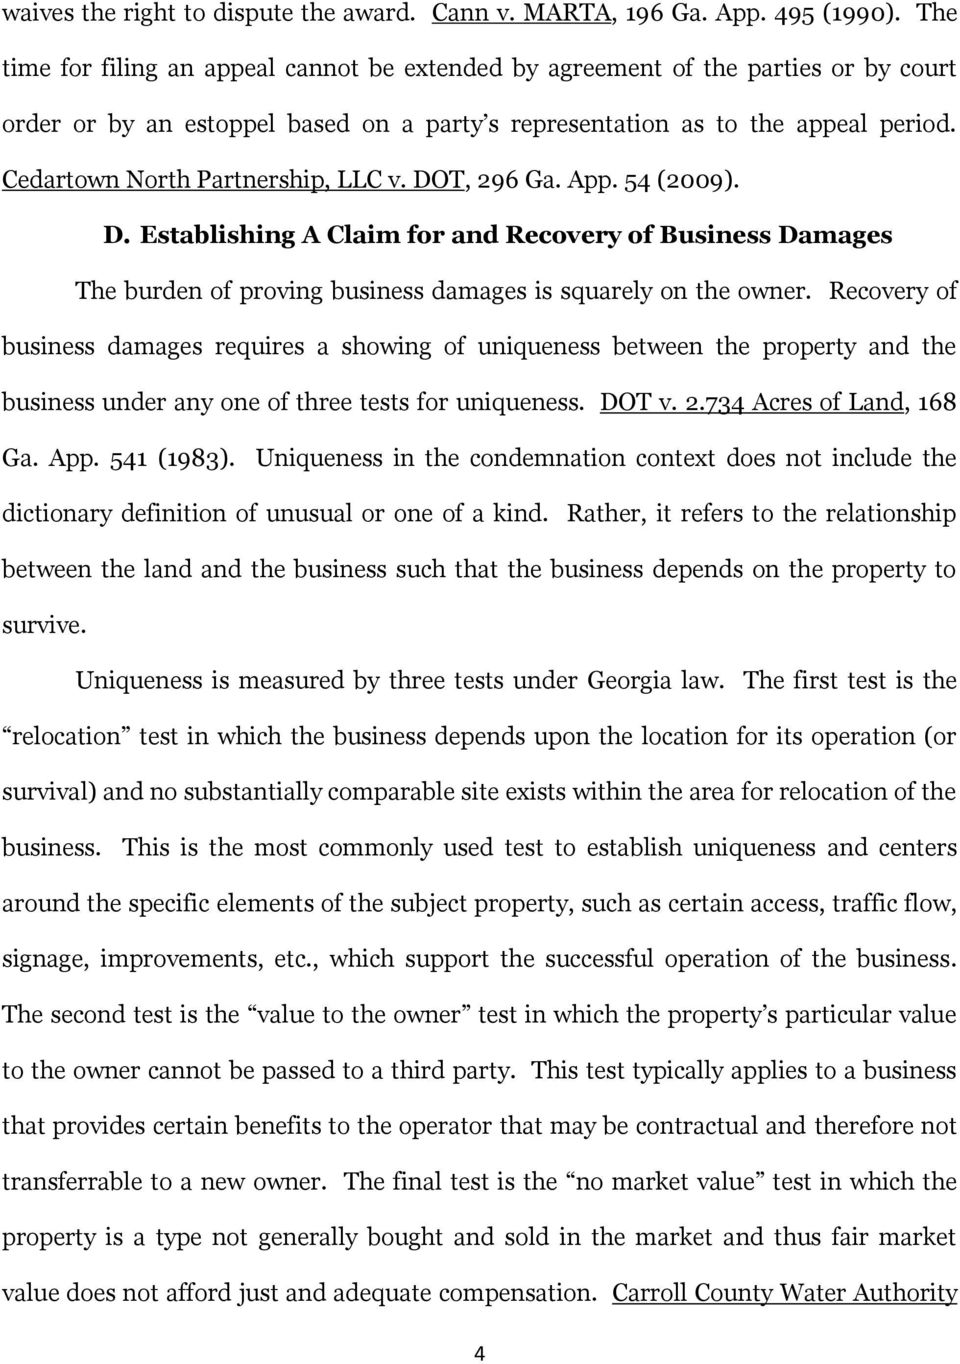 Cedartown North Partnership, LLC v. DOT, 296 Ga. App. 54 (2009). D. Establishing A Claim for and Recovery of Business Damages The burden of proving business damages is squarely on the owner.